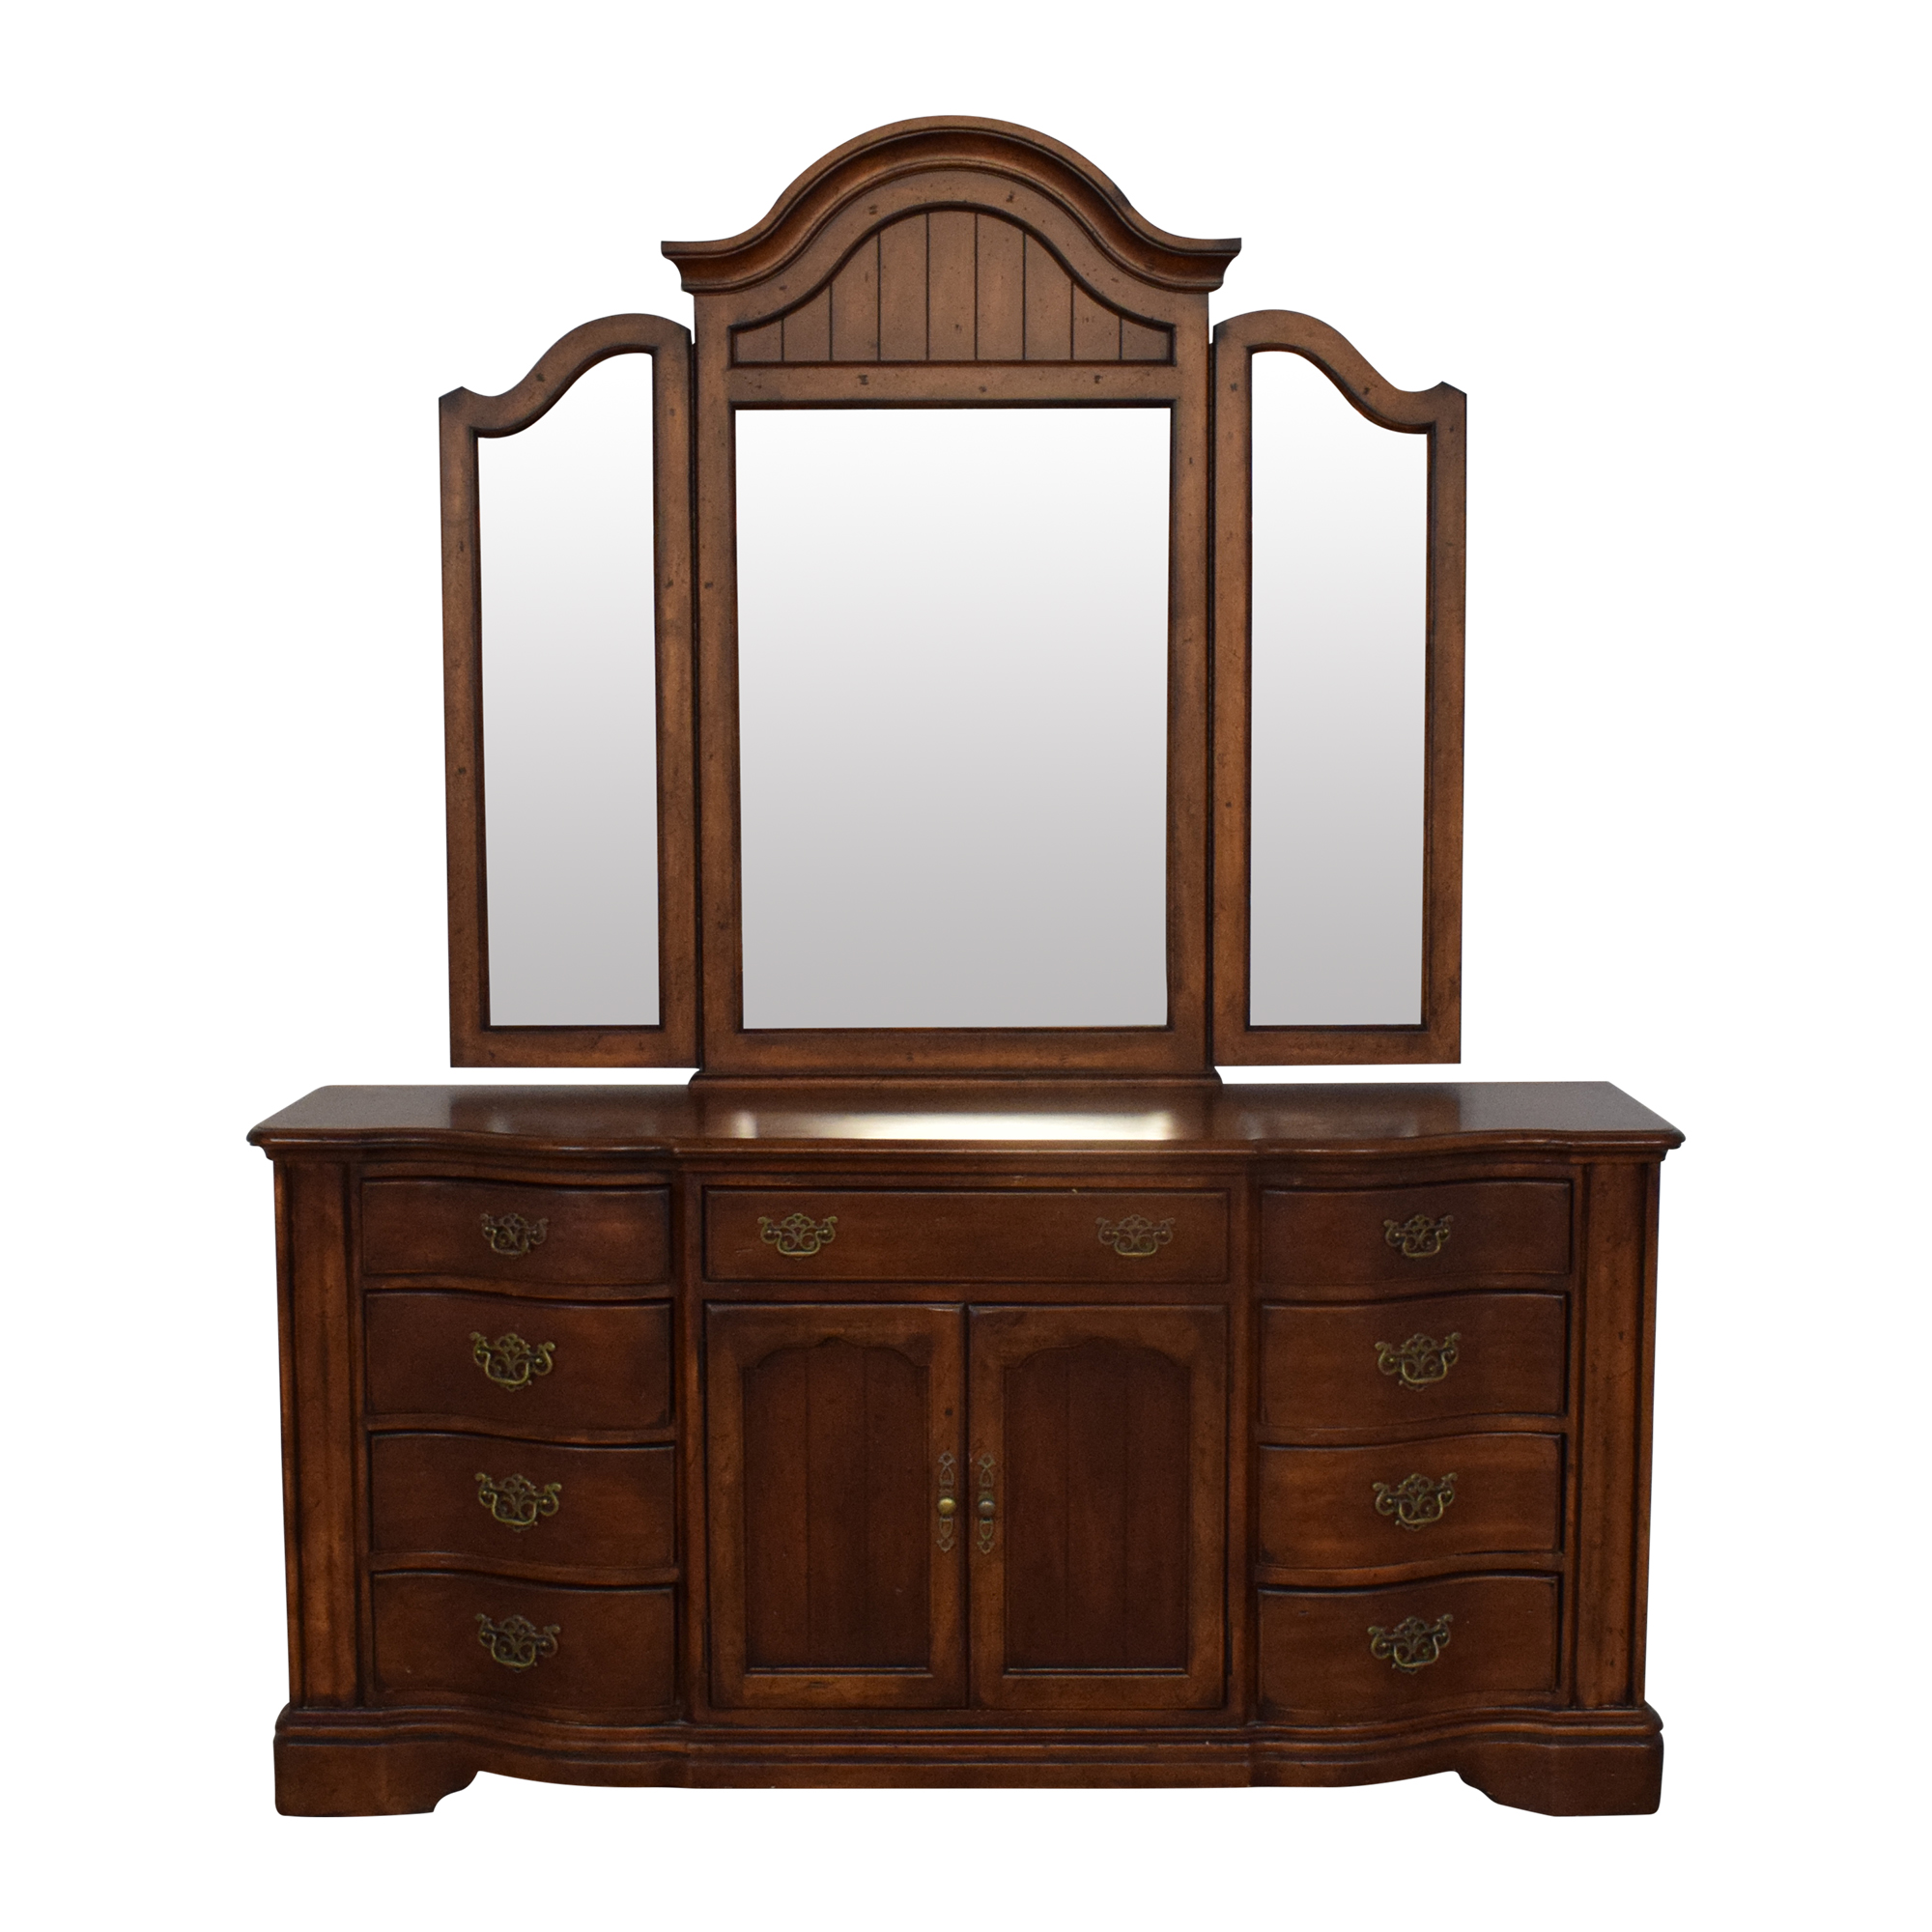 Universal Furniture Dresser with Mirror / Storage